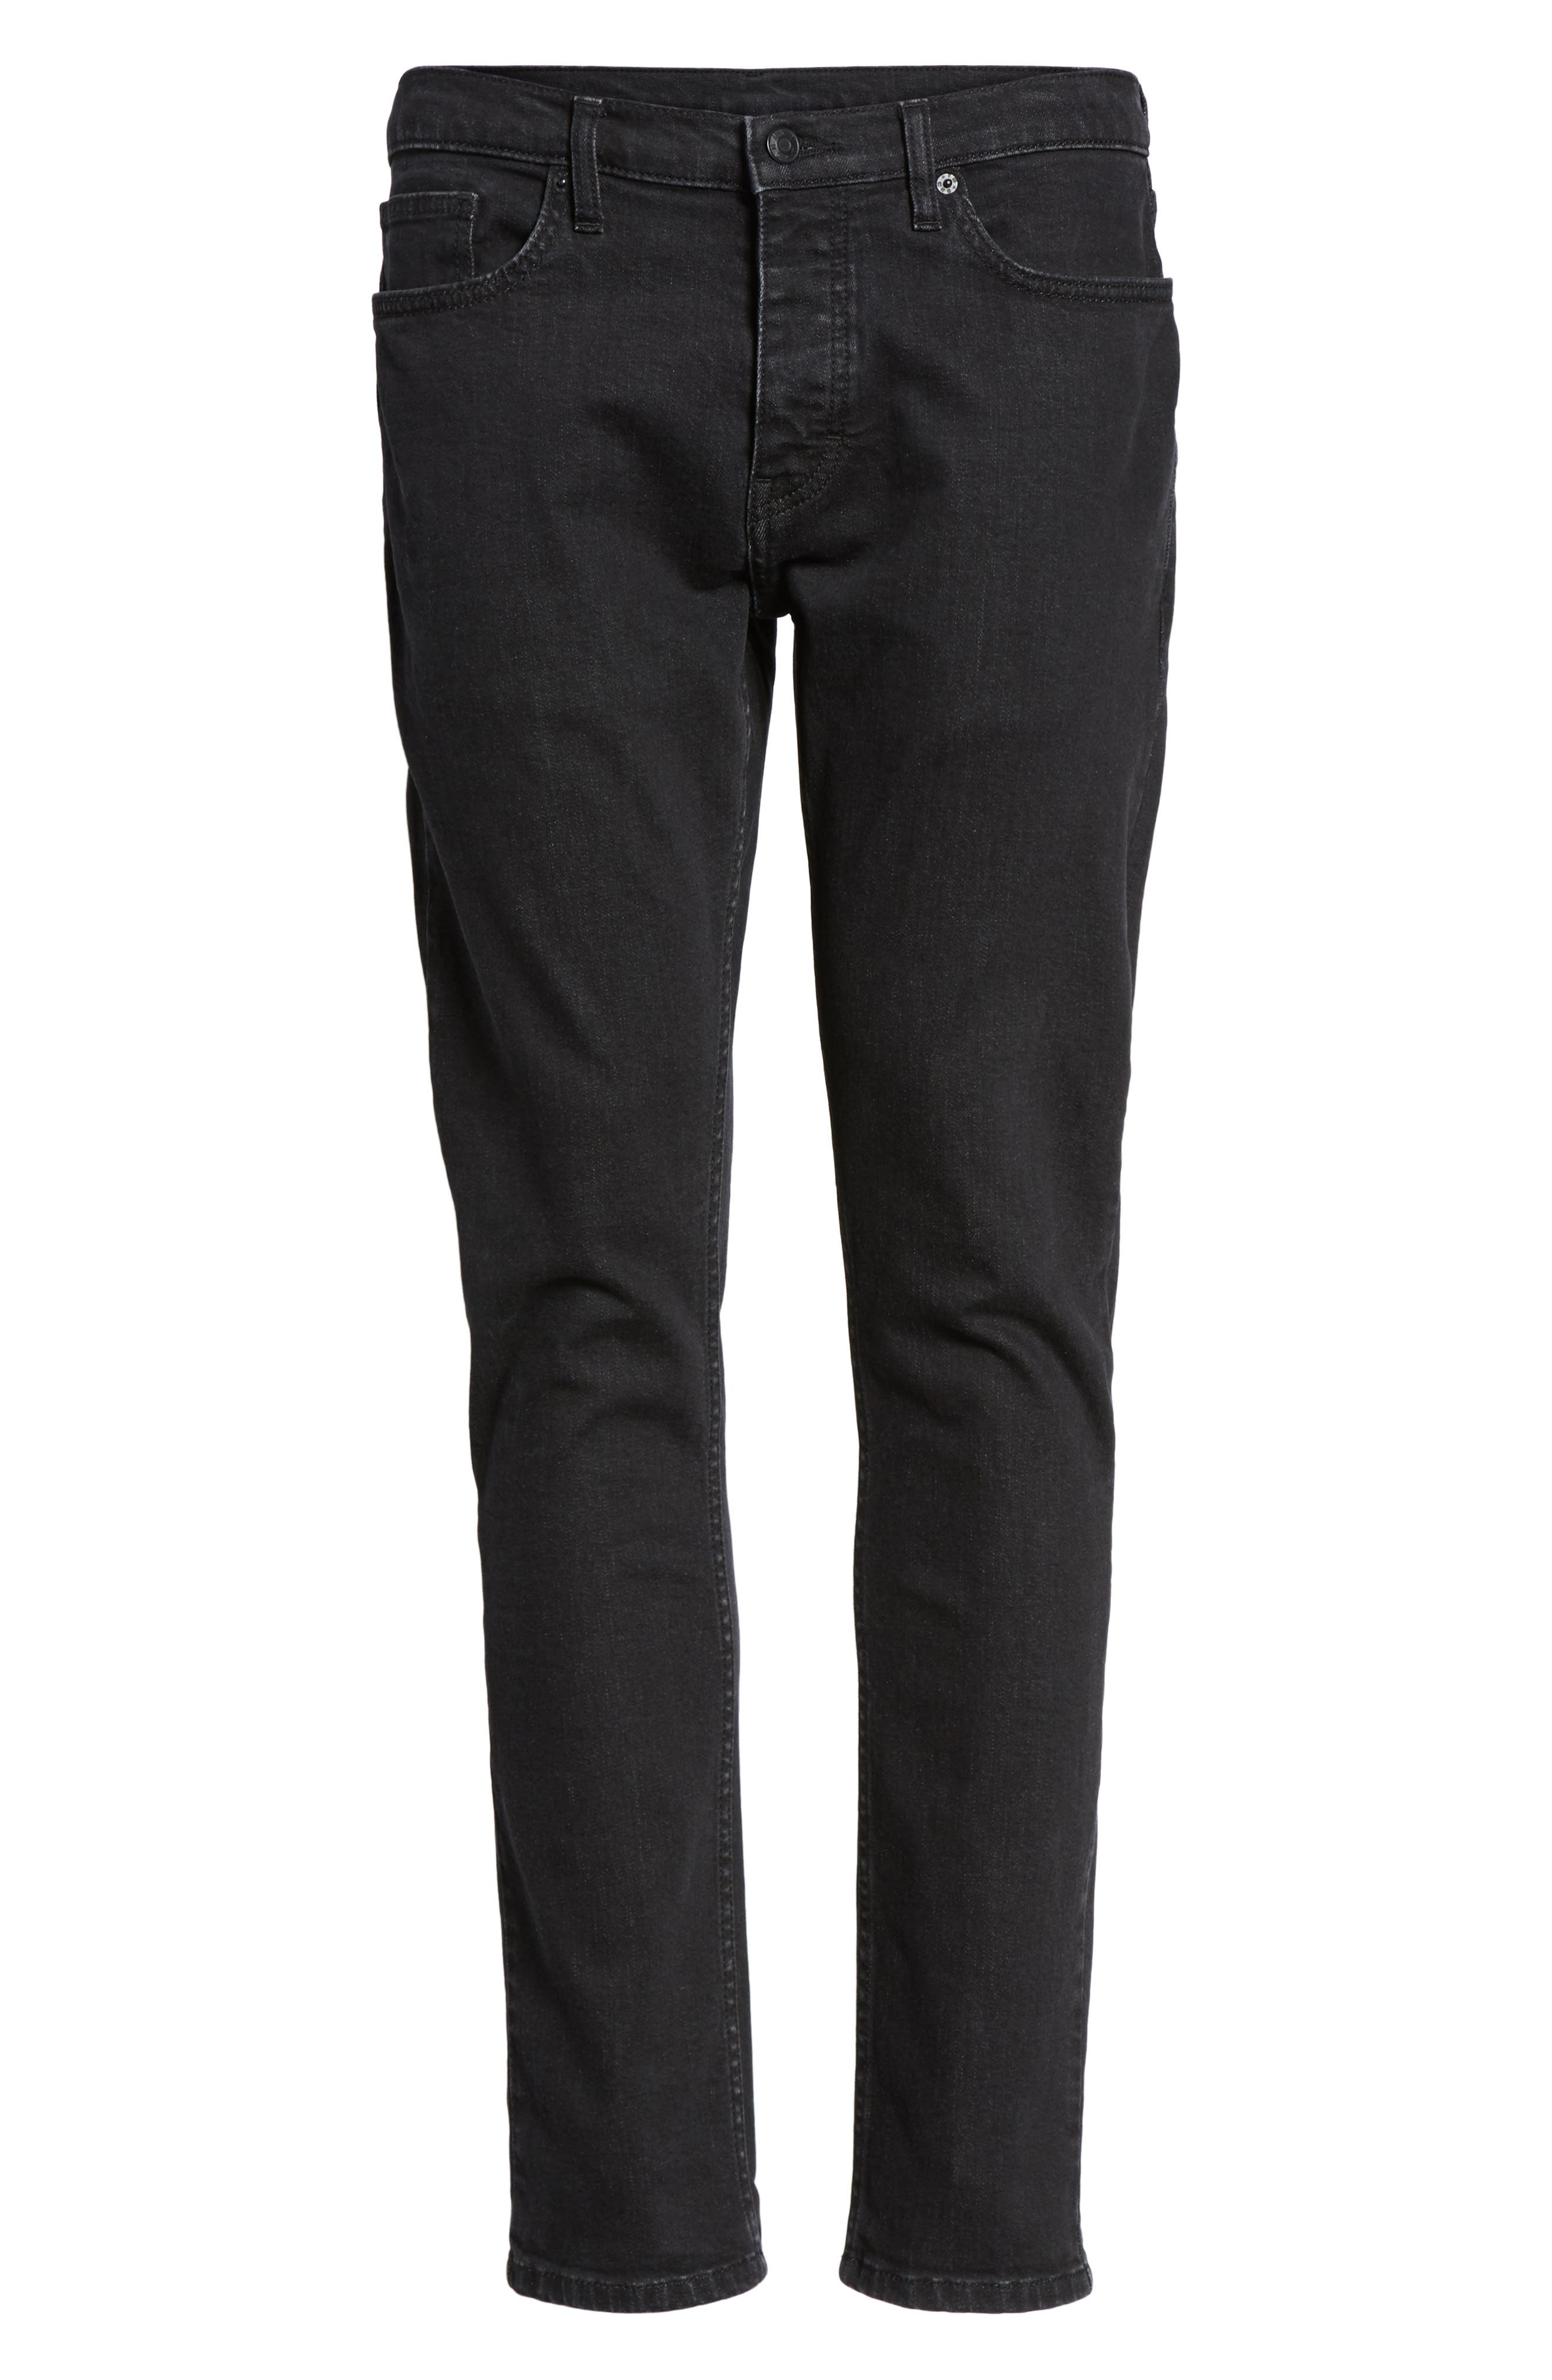 Washed Slim Fit Jeans,                             Alternate thumbnail 6, color,                             001